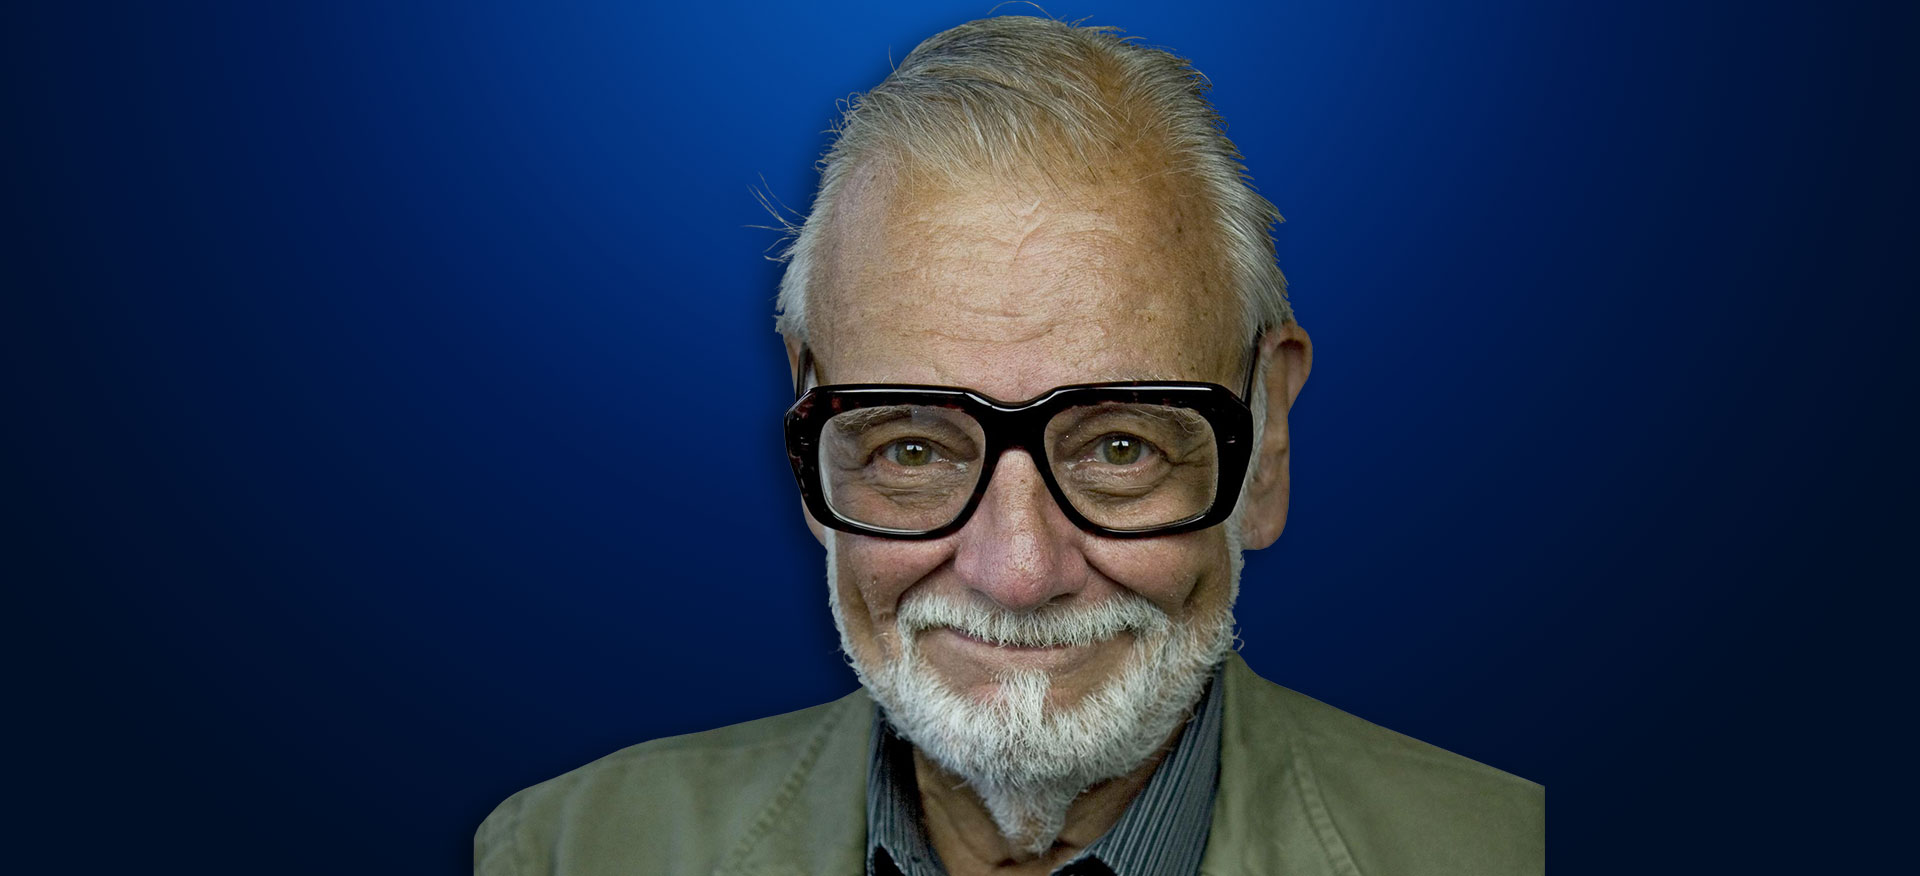 GEORGE A ROMERO HEADSHOT